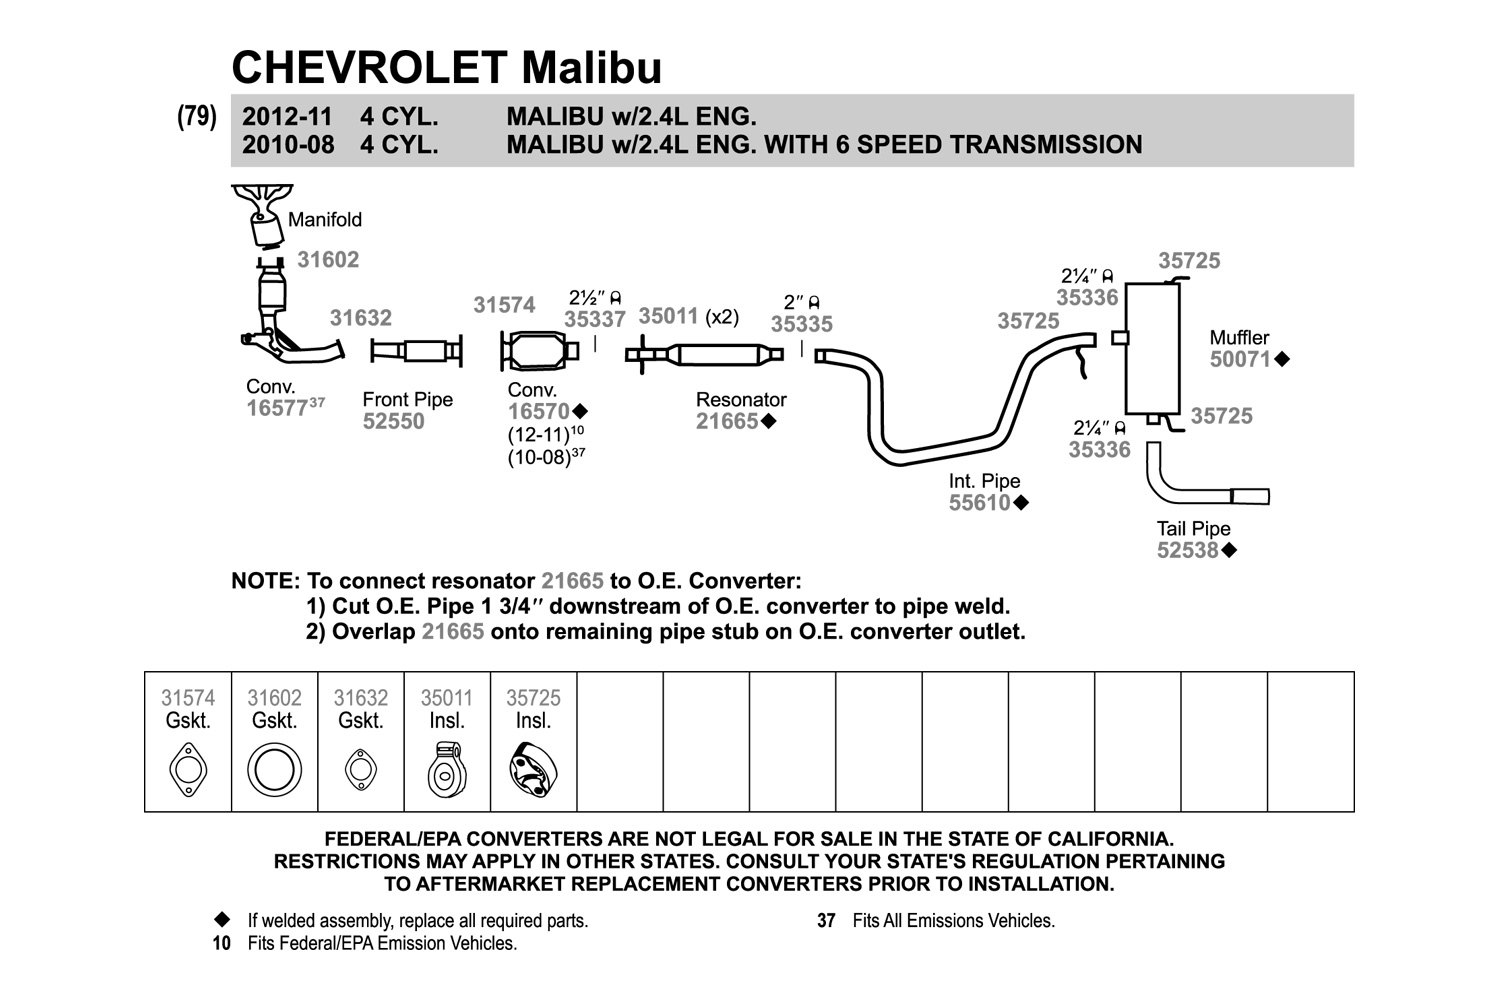 2001 chevy impala exhaust system diagram fios telephone wiring walker 55610 aluminized steel intermediate pipe